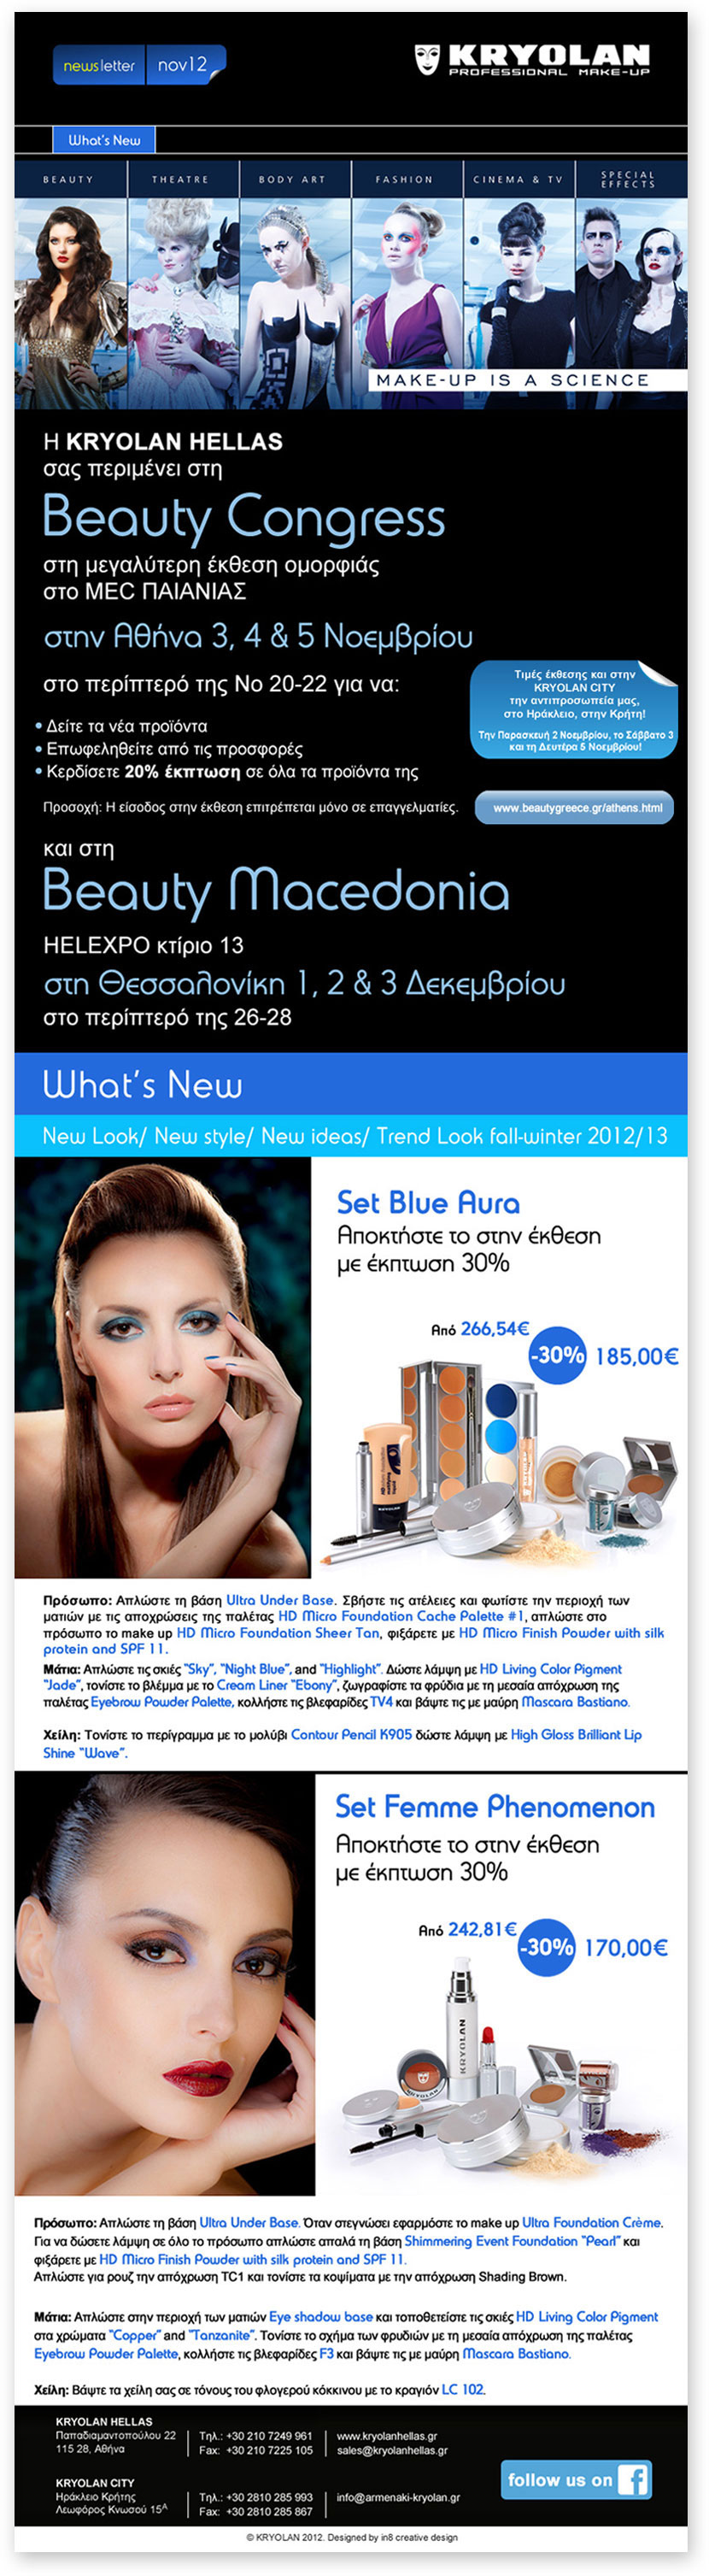 kryolan-newsletter